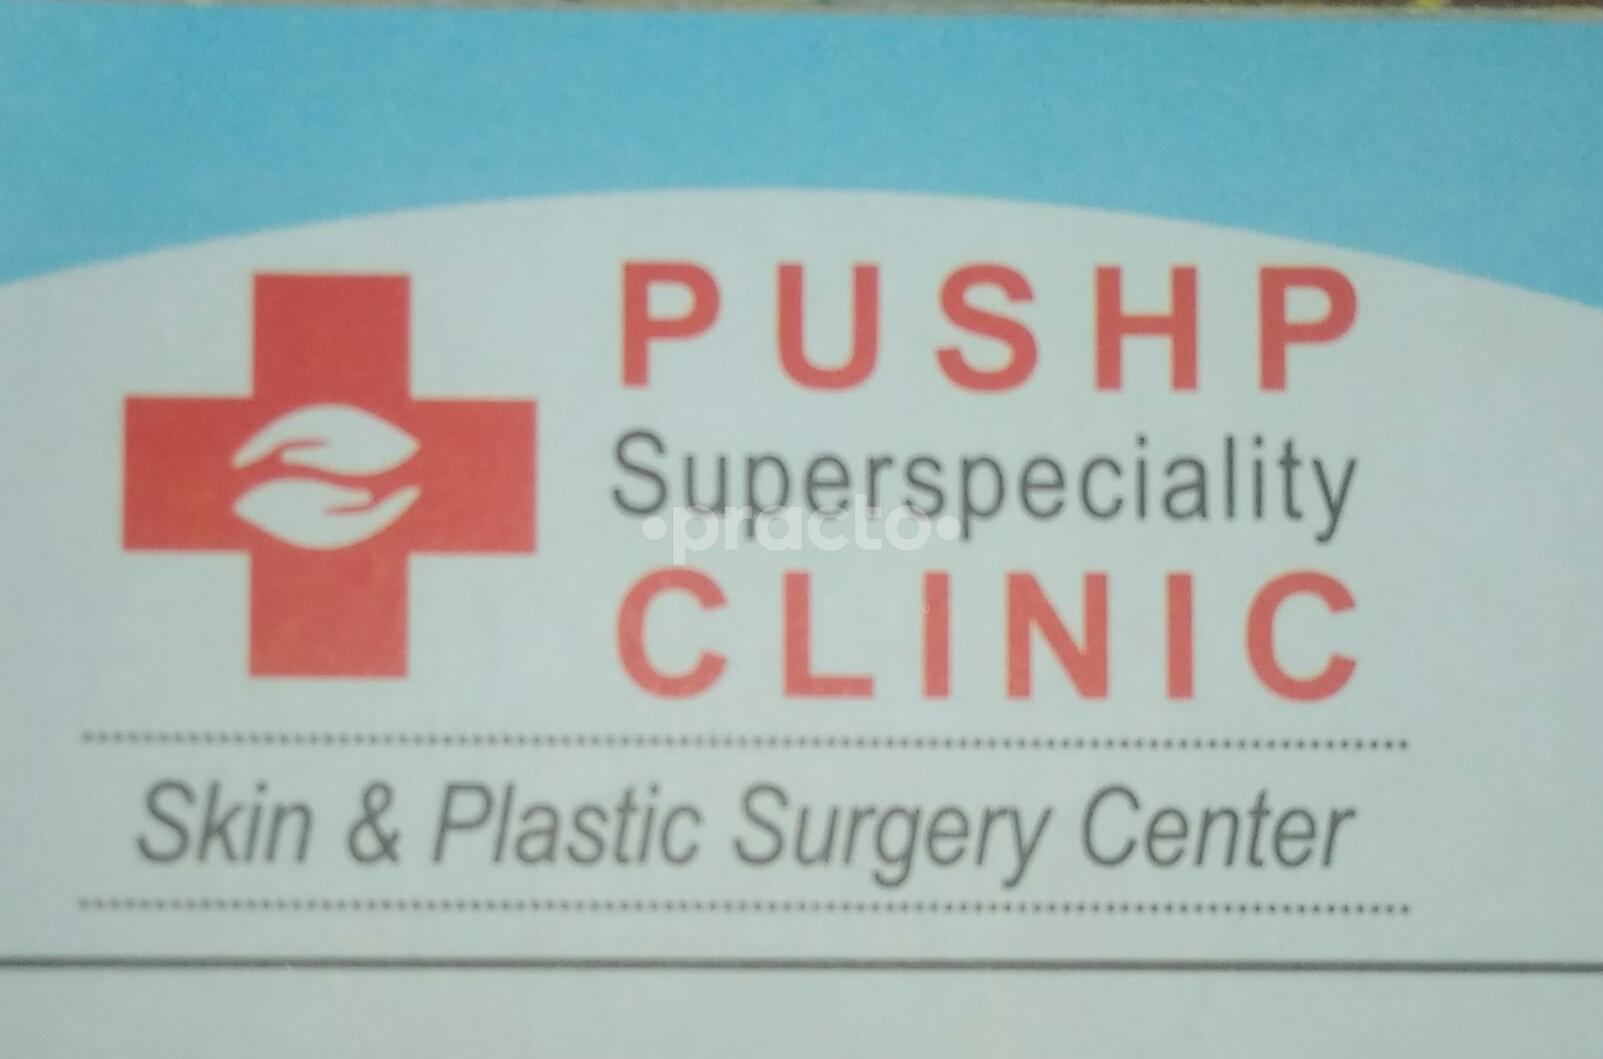 Pushp Superspeciality Clinic